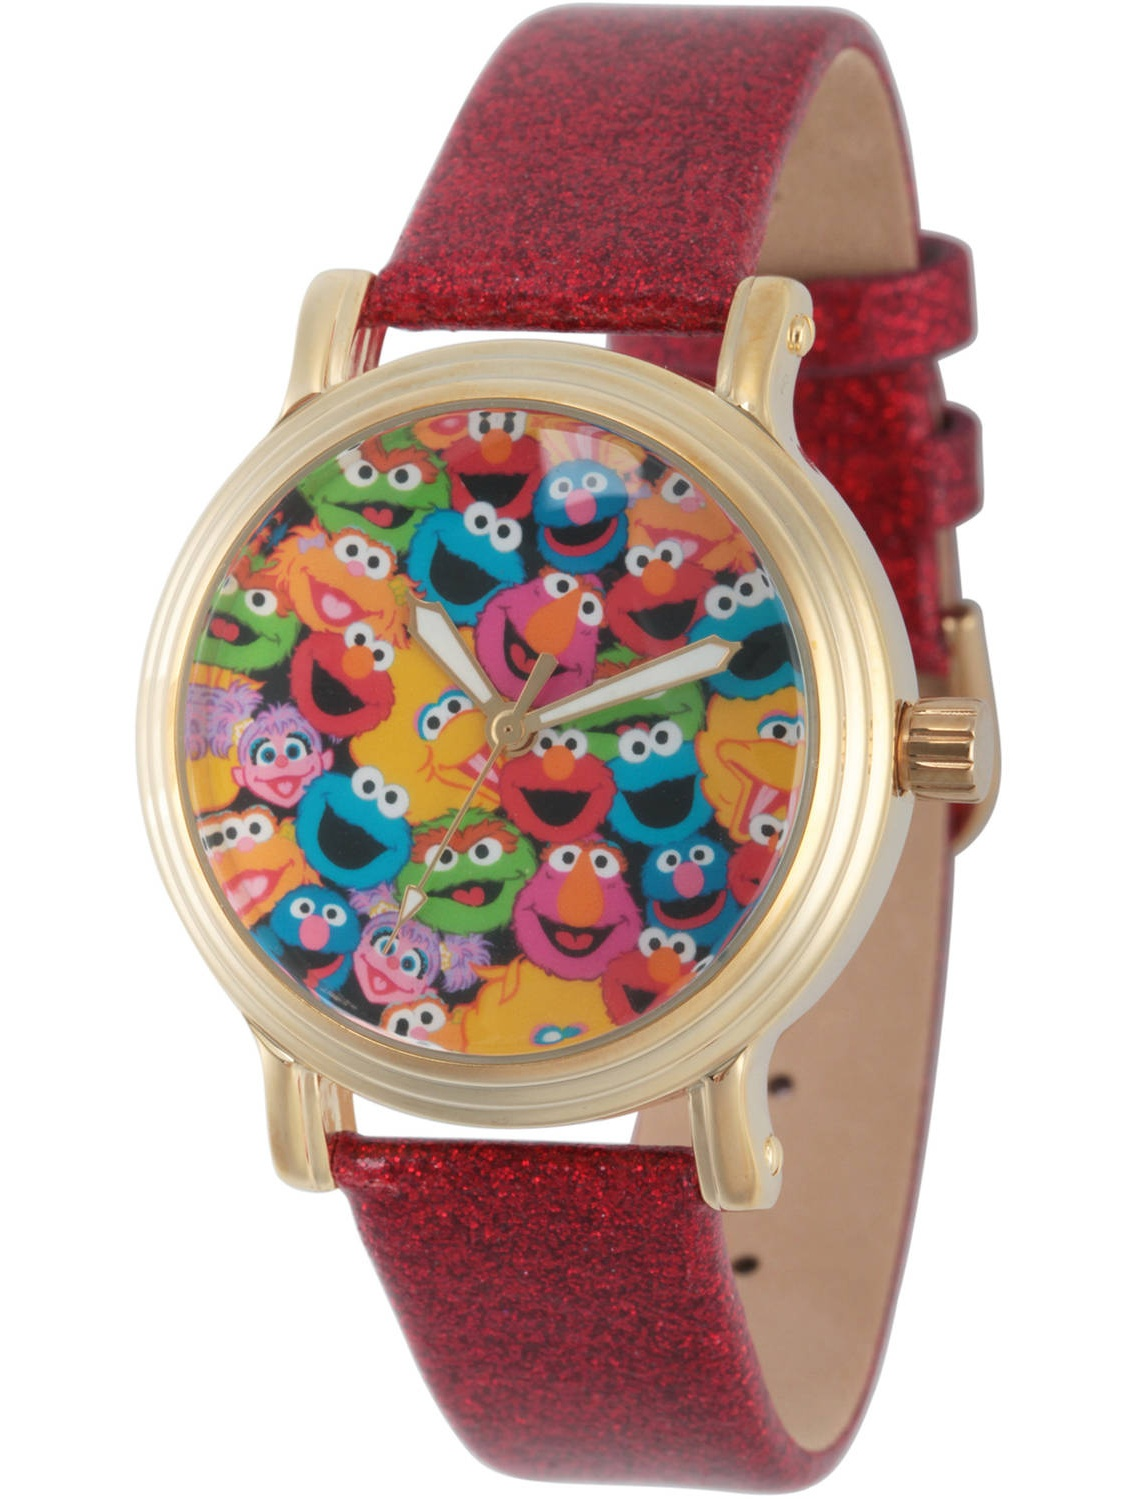 Sesame Street, Group Pattern Women's Gold Vintage Alloy Watch, Red Glitter Strap